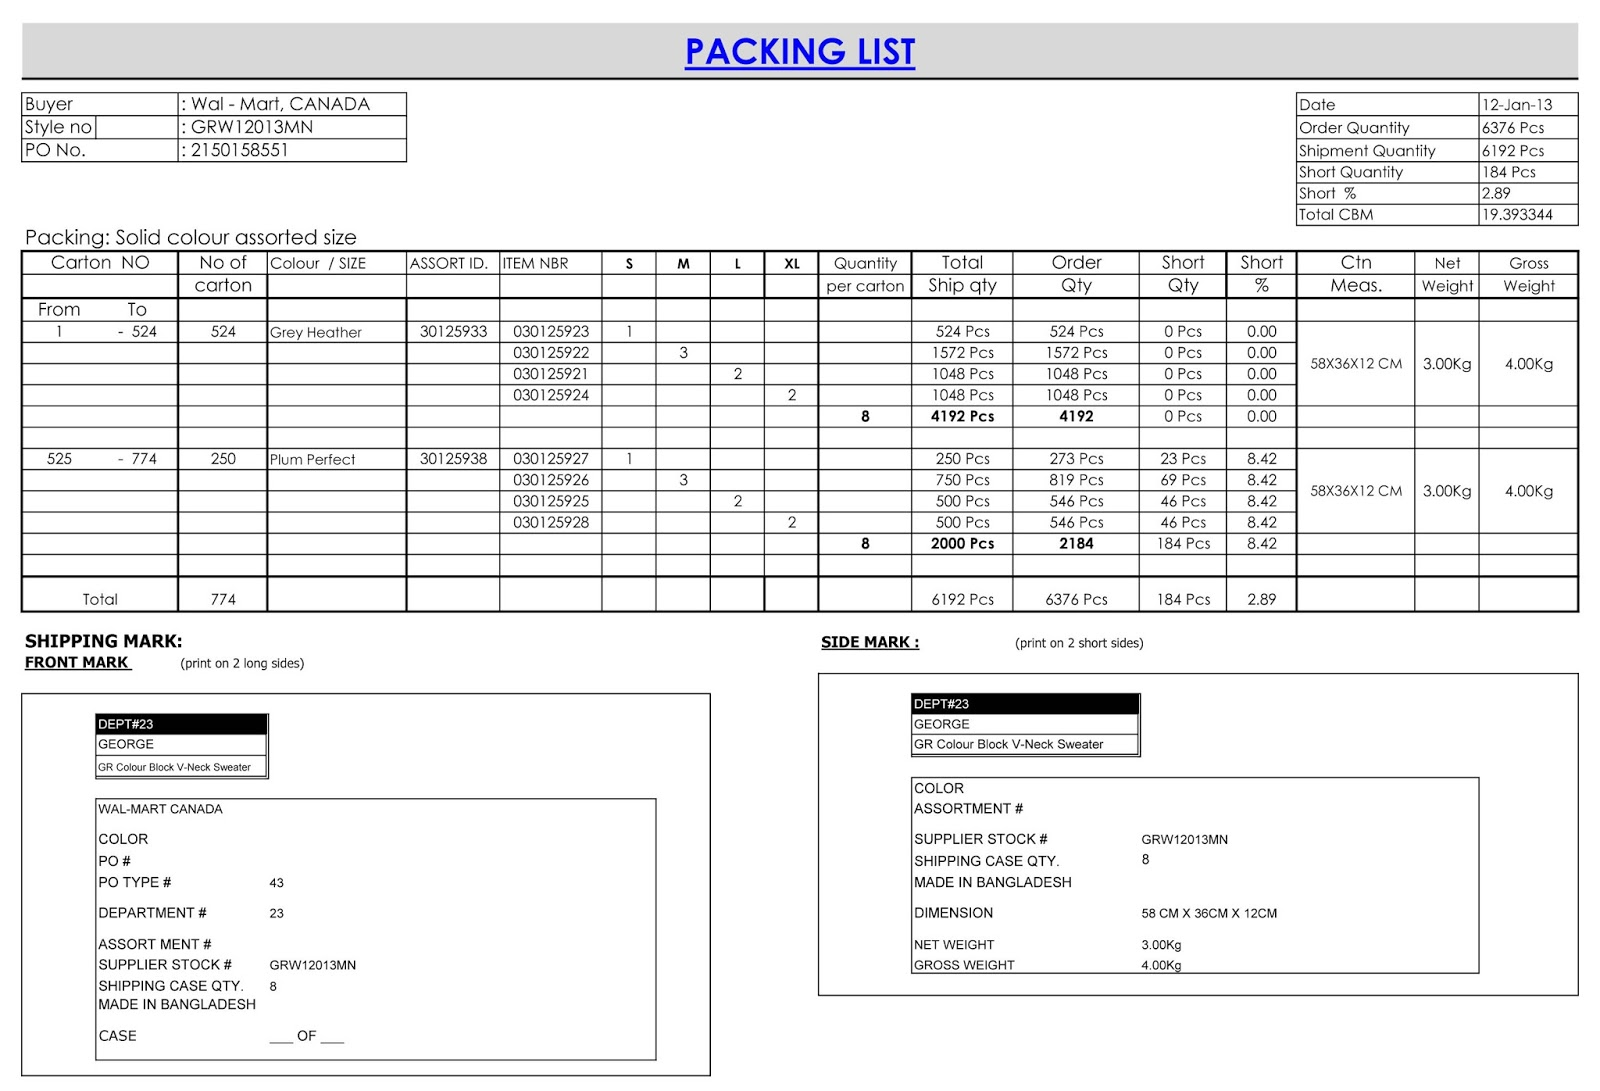 Sample Packing List 2  Packing List Sample